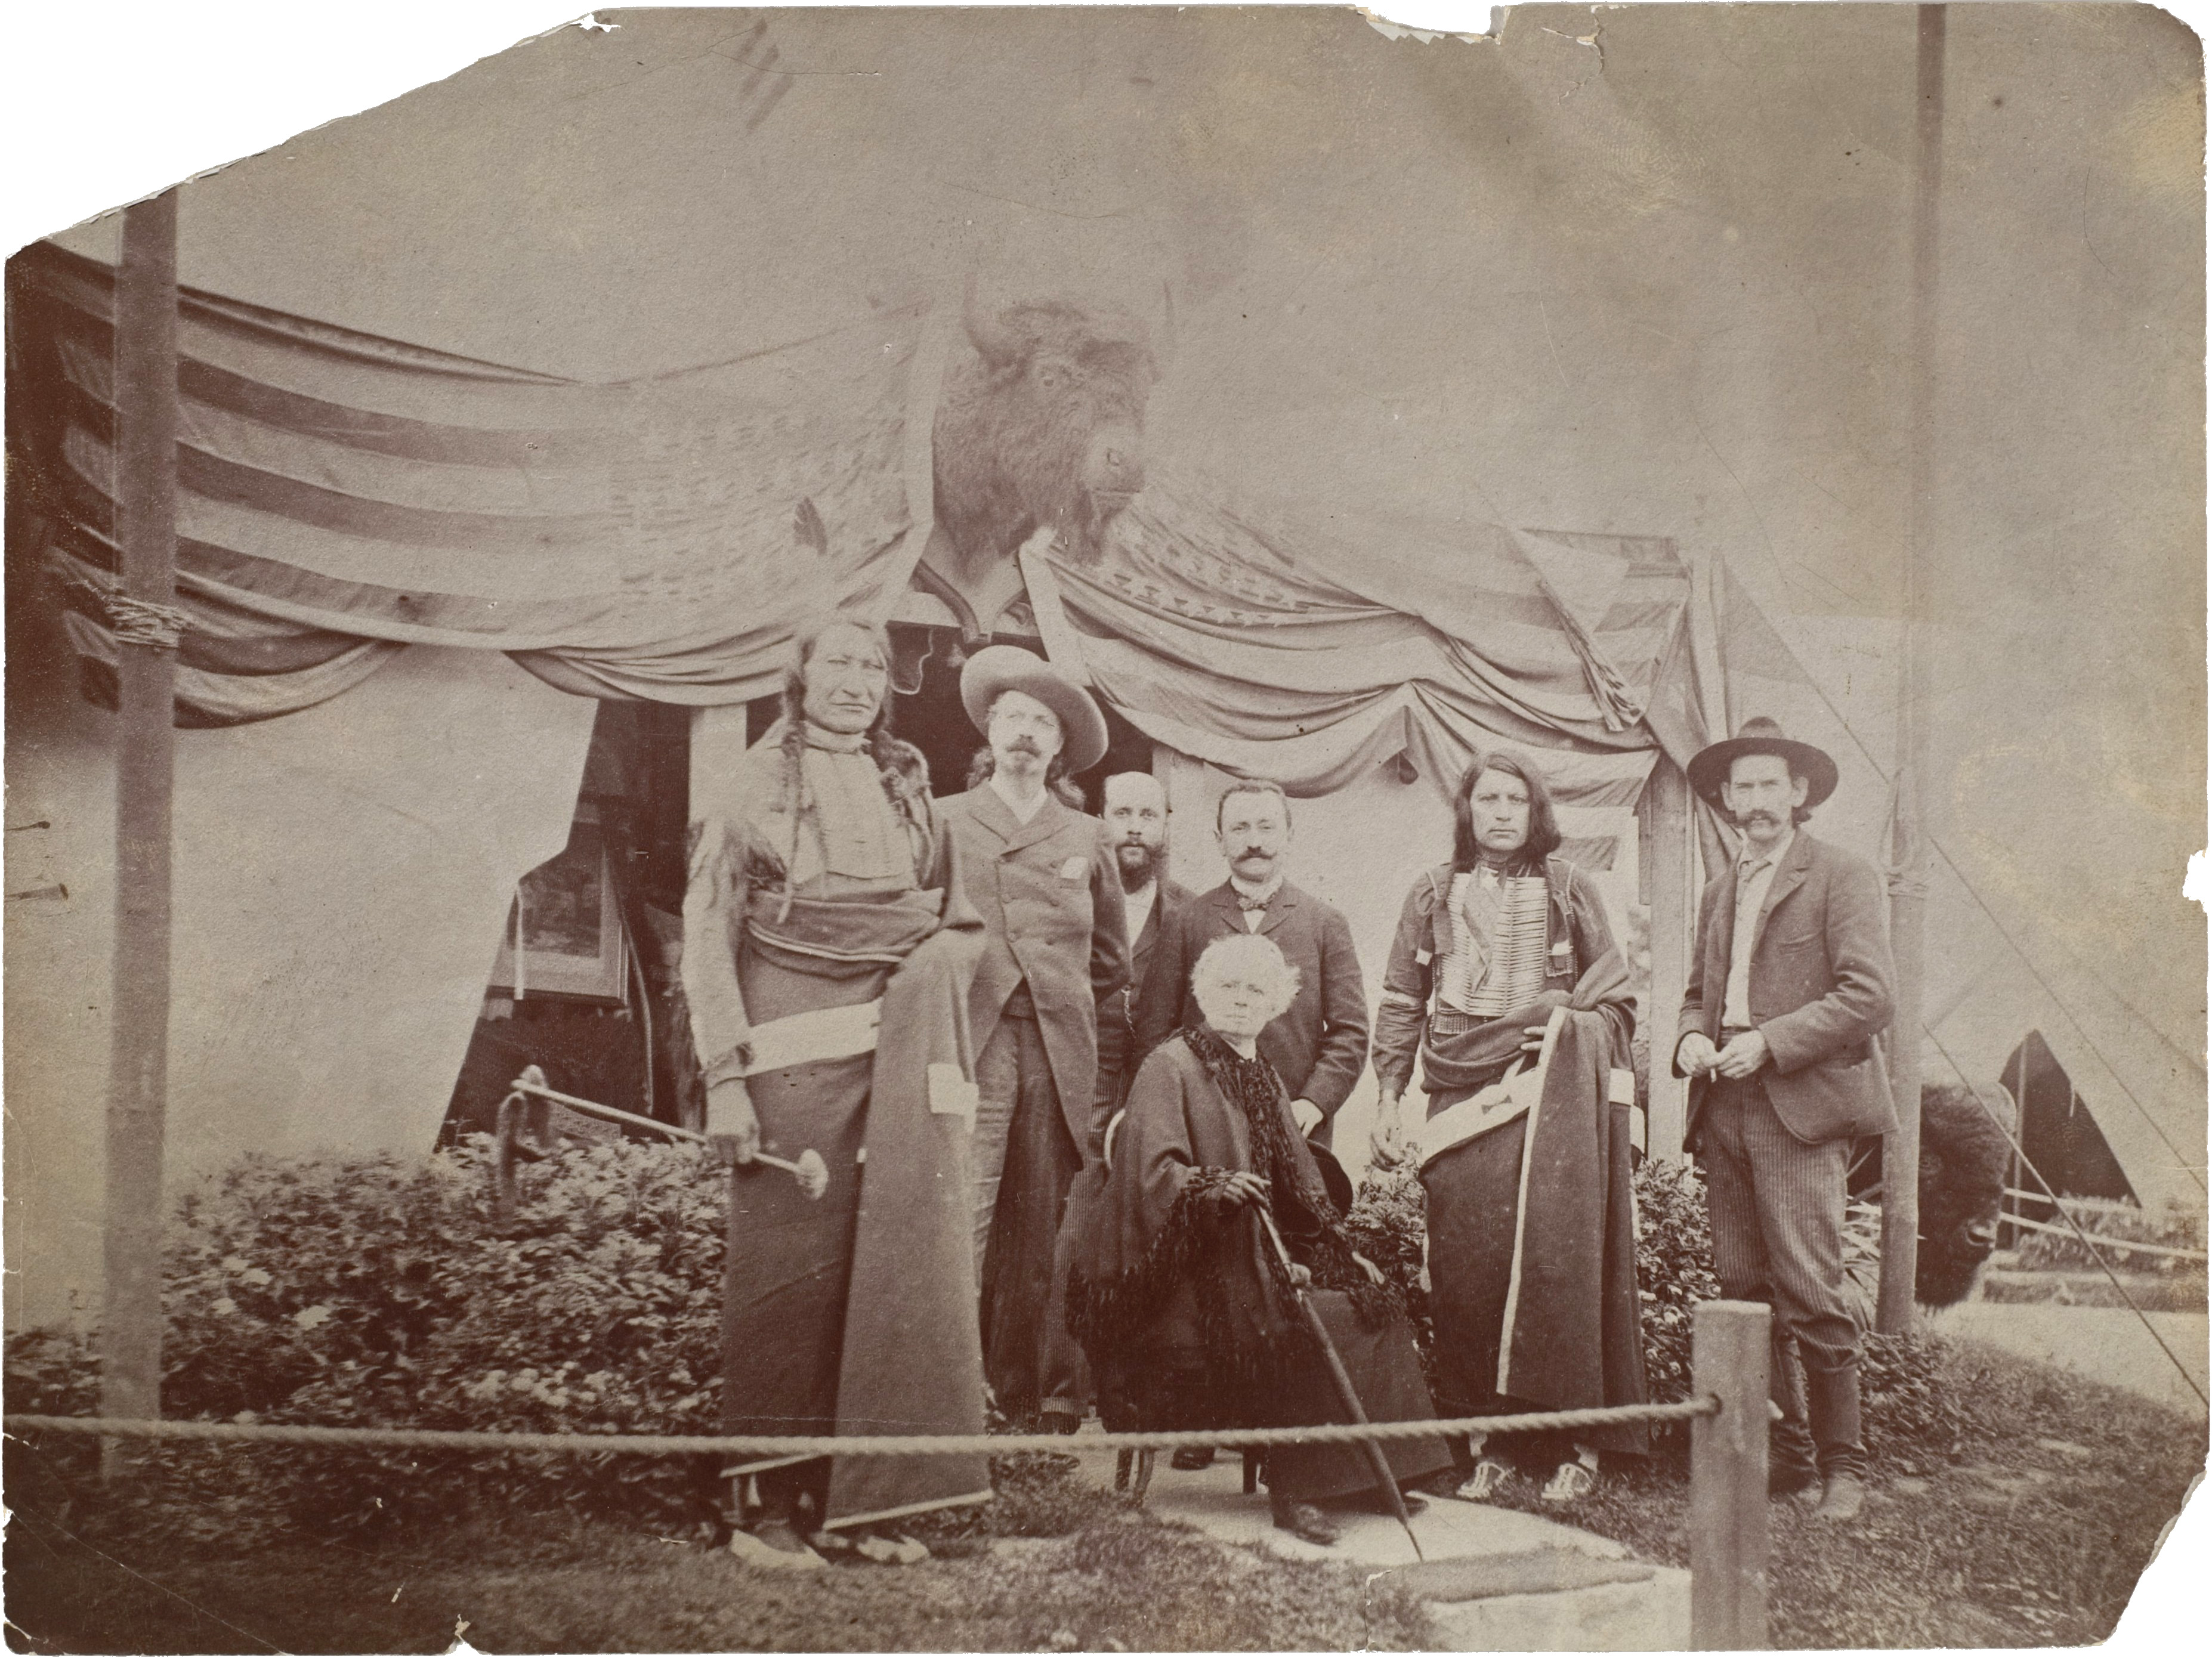 William F. Buffalo Bill Cody, Rosa Bonheur, Chief Rocky Bear, Chief Red Shirt, William Broncho Bill Irving, Roland Knoedler, and Benjamin Tedesco at the Paris Exposition Universelle (1889)